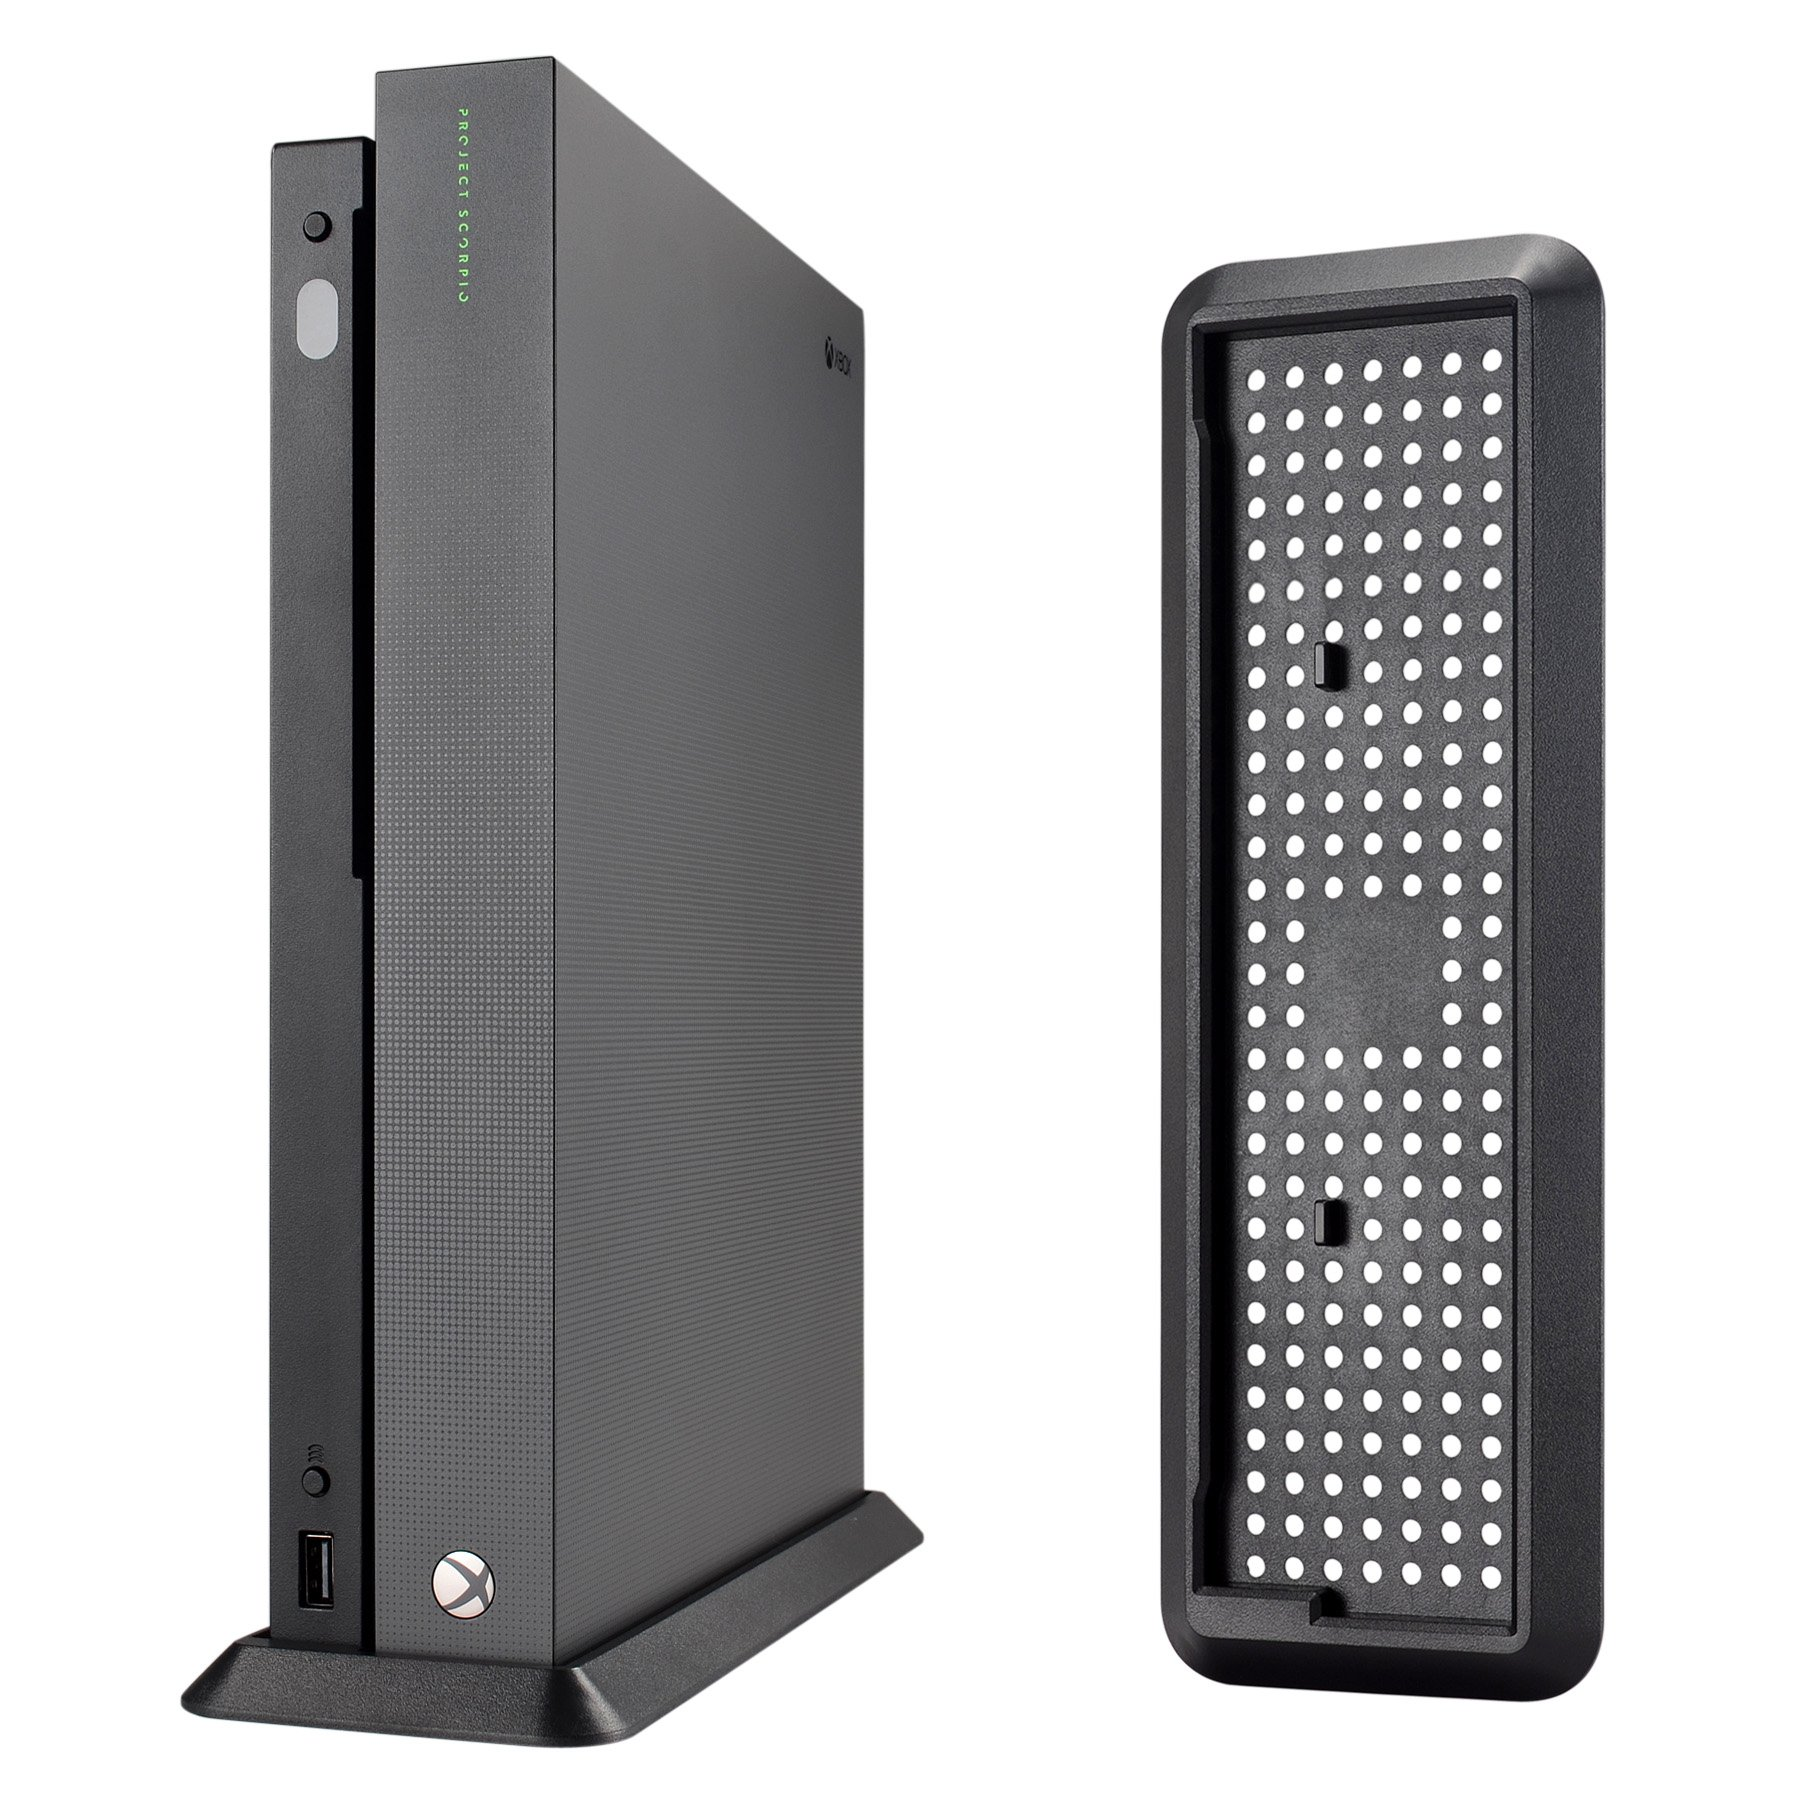 eXtremeRate Vertical Console Stand for Xbox One X Project Scorpio - Black by eXtremeRate